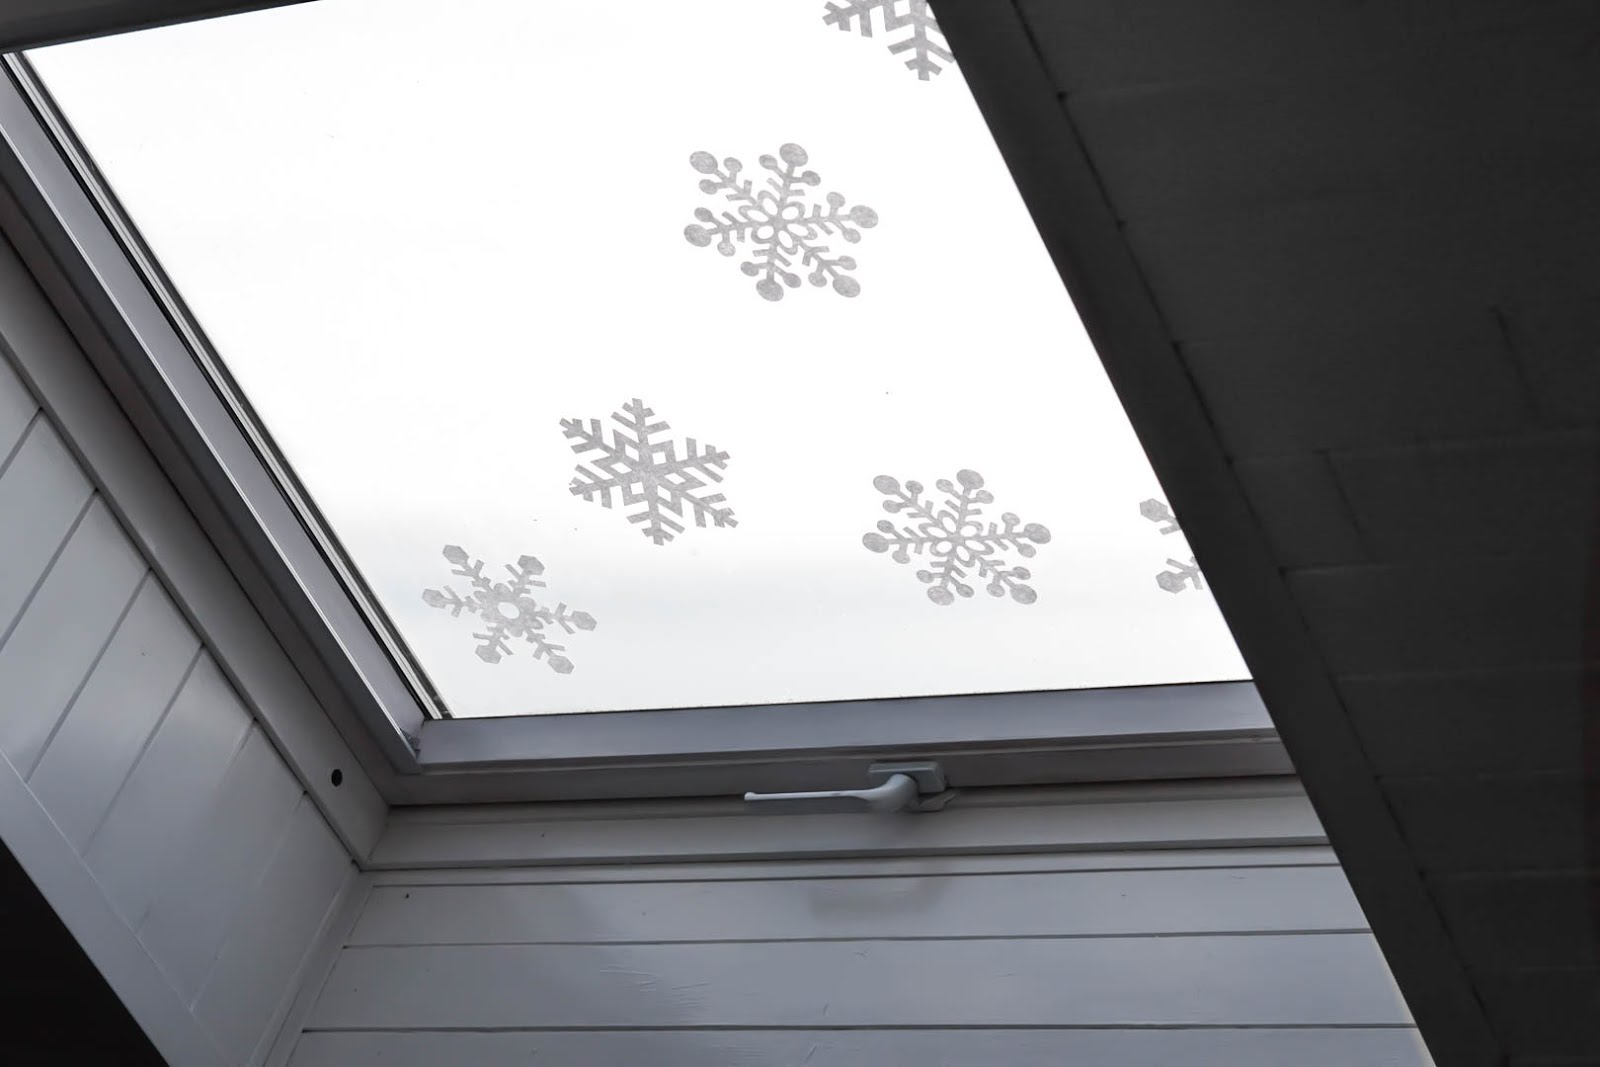 Velux, christmas, window sticker, snowflake, blokker, raamstickers, sneeuw, dakraam, kerstmis